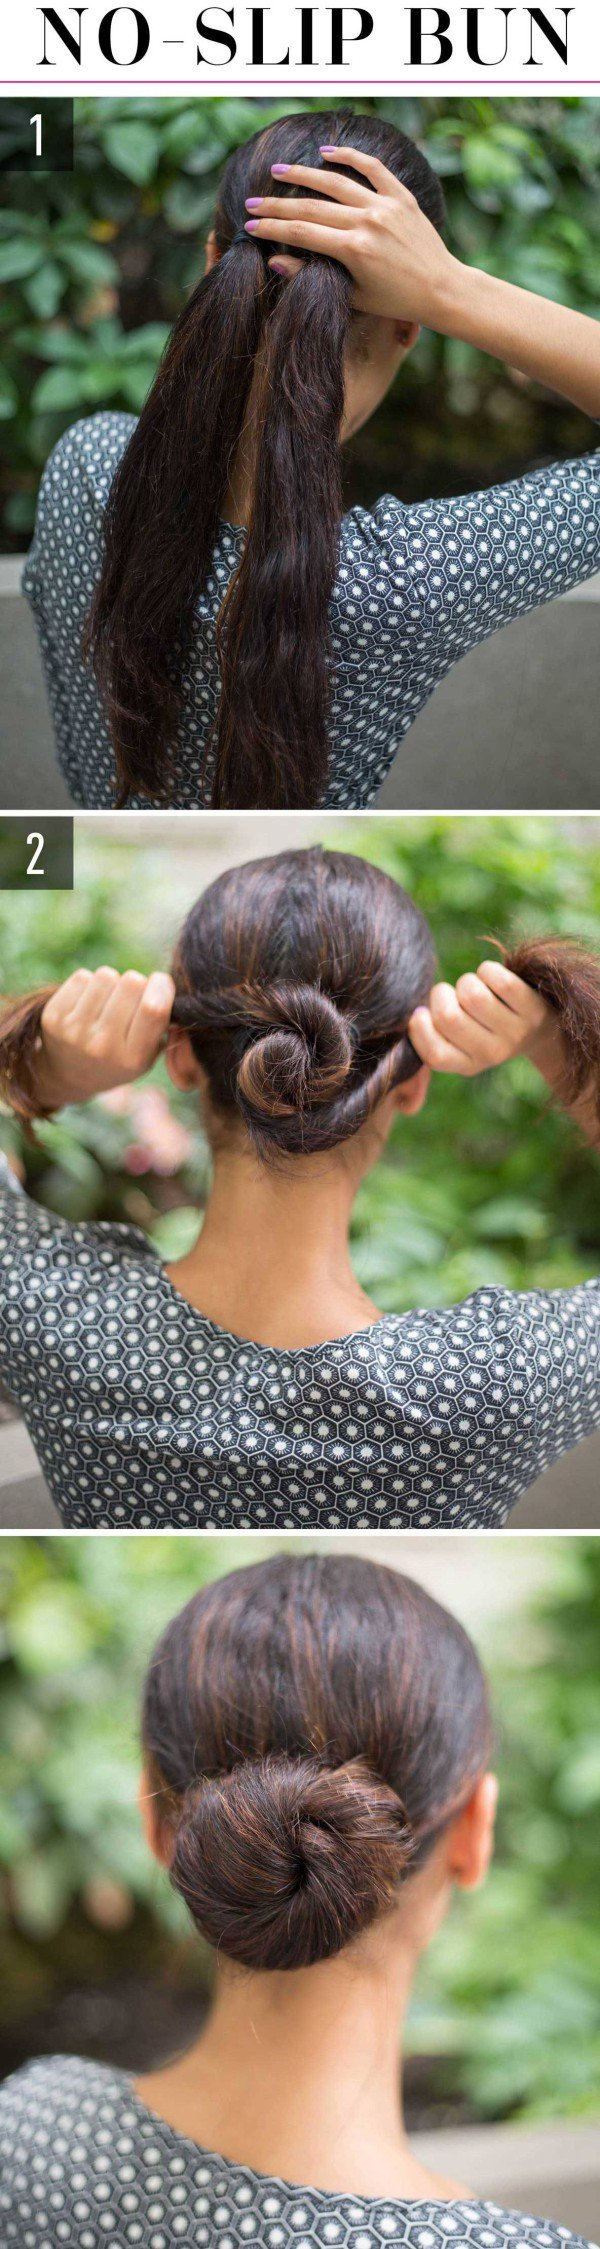 12 Adorable and Super Easy Hairstyles for Lazy Girls Who Cant Even